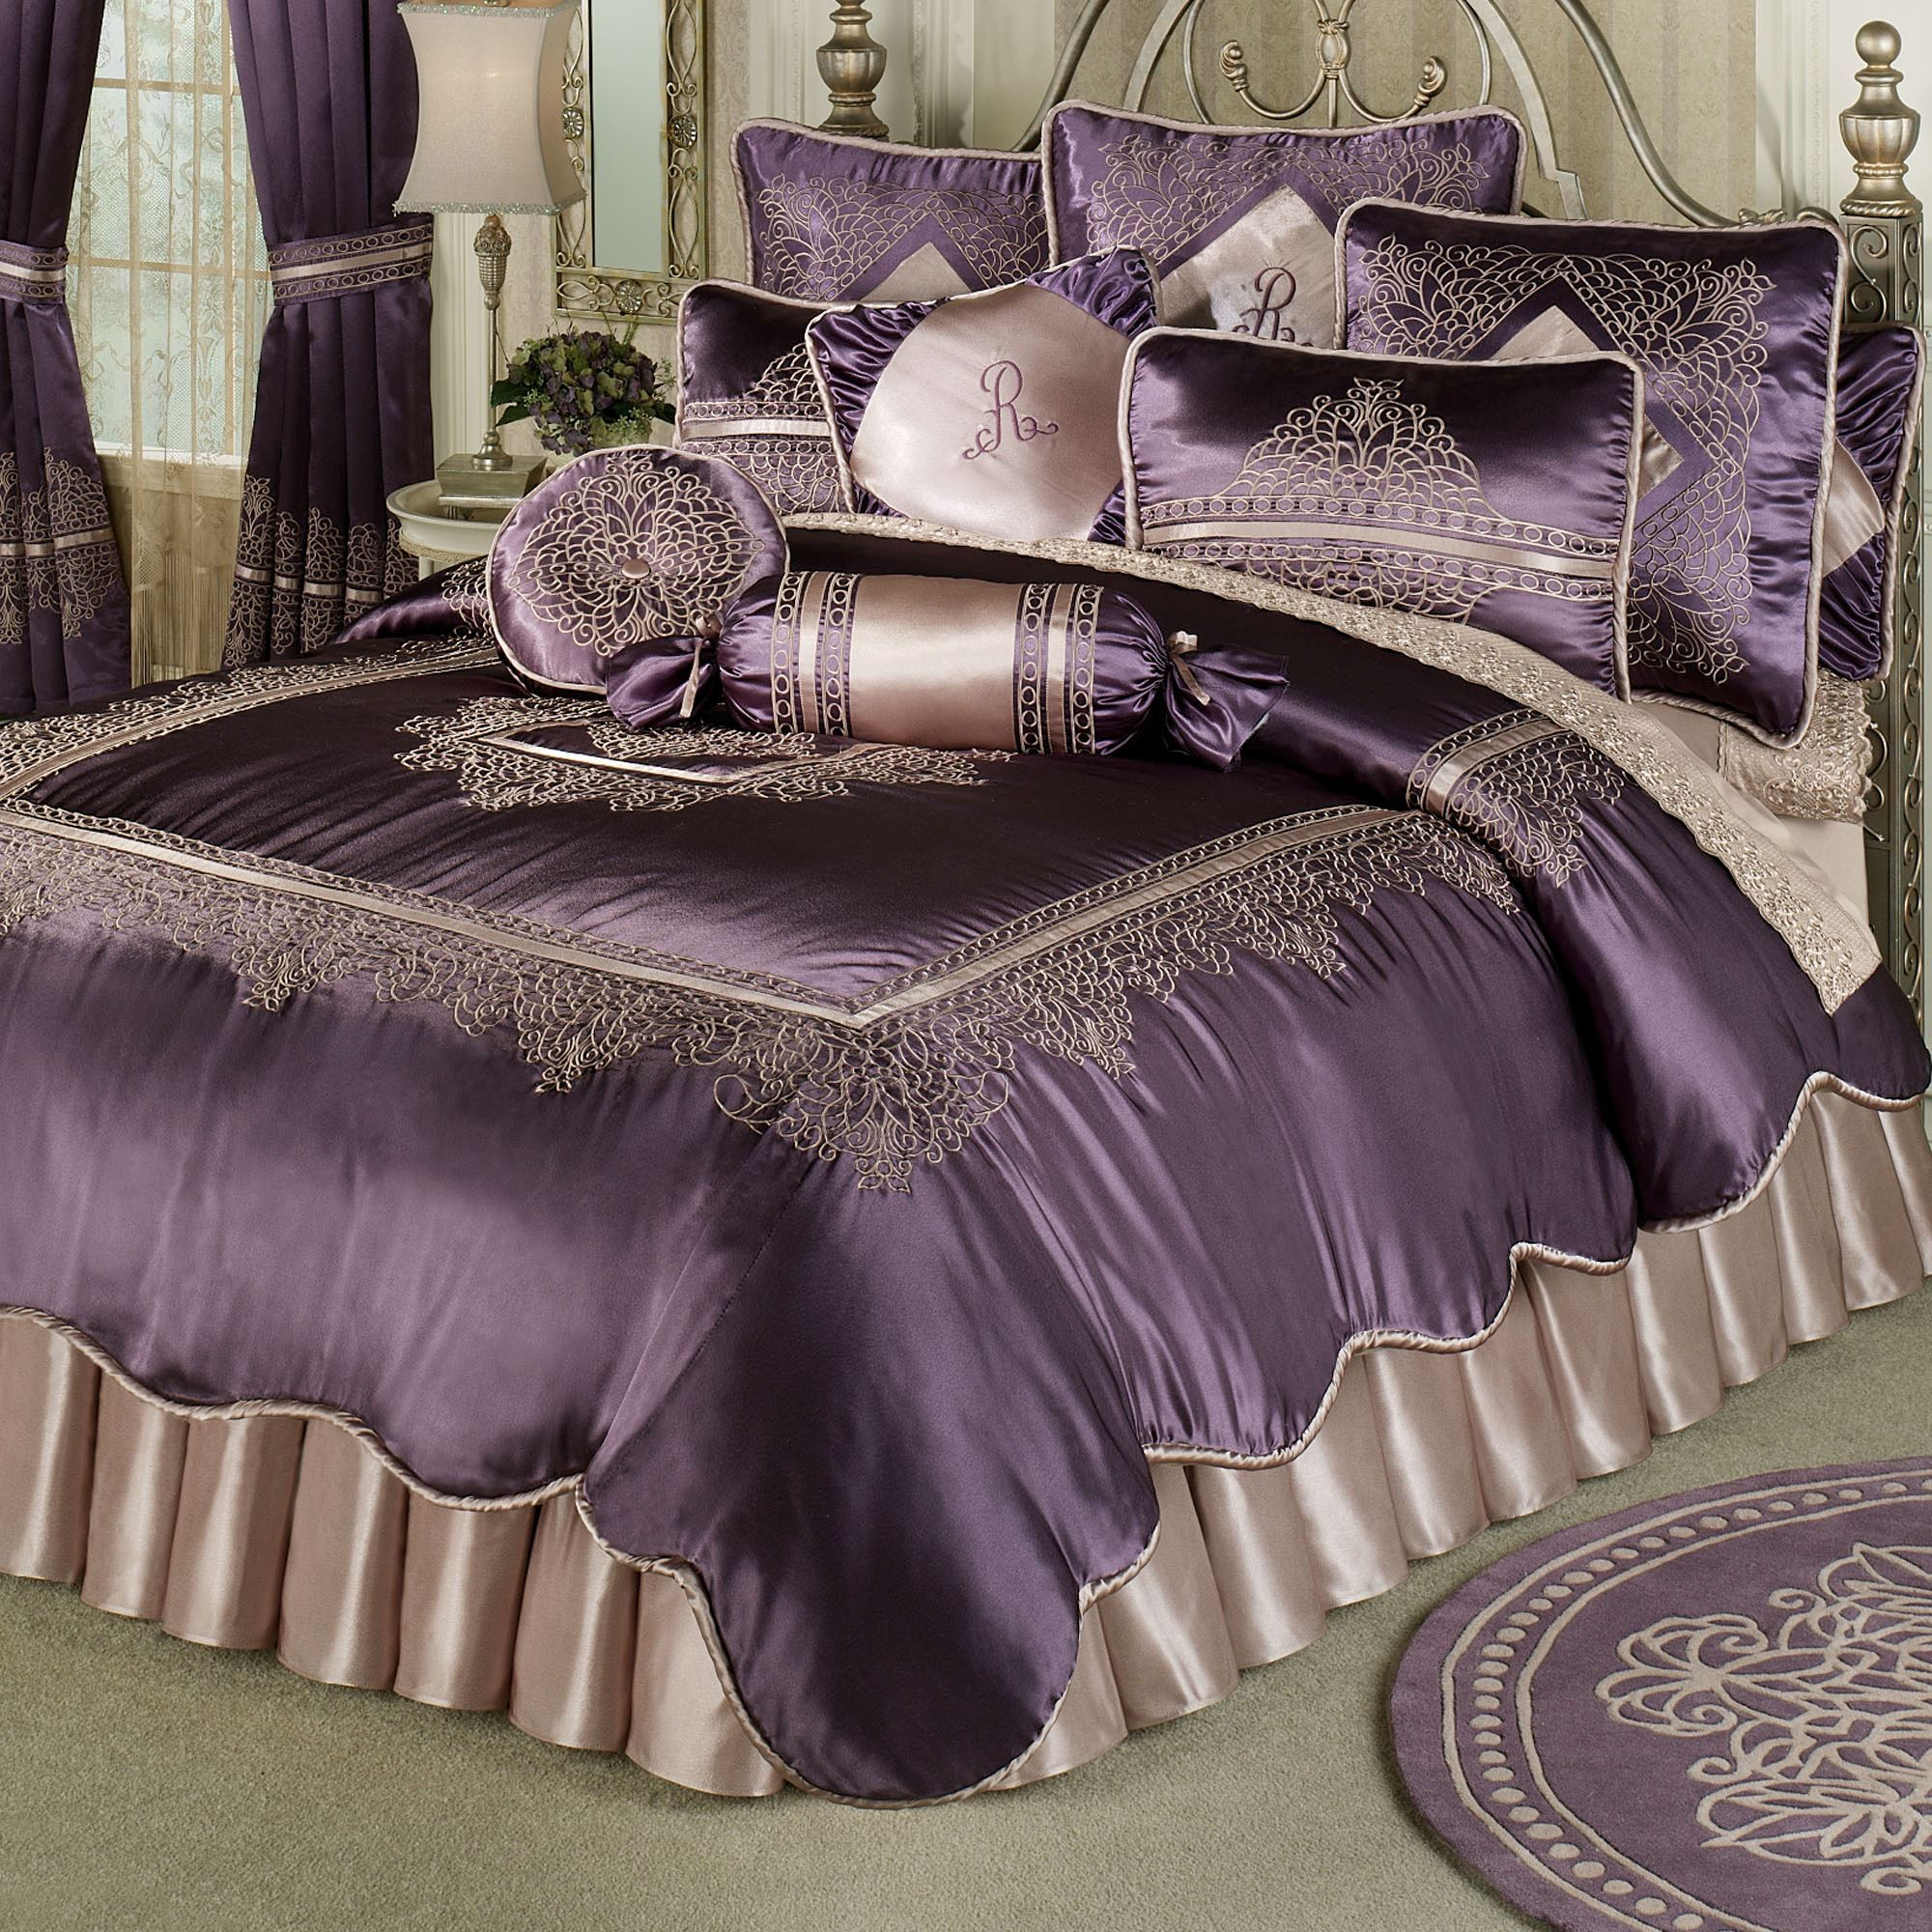 bedding kylie petra ks ponden home nude satin collection minogue qc comforter final nu